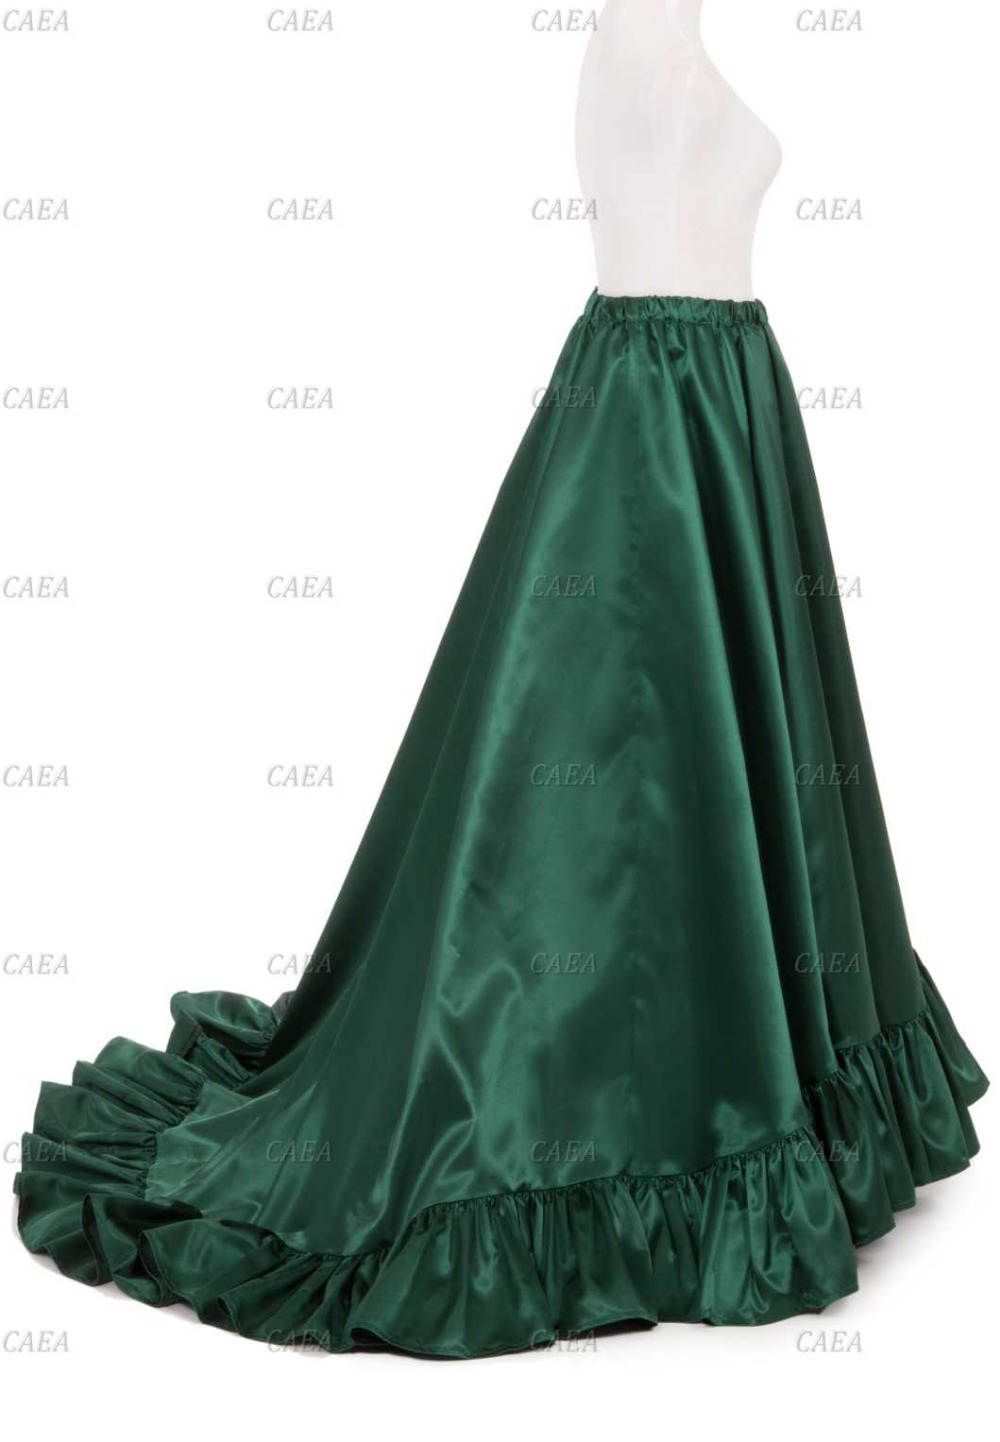 Victorian Satin Ruffled Skirt Satin Skirt Stage Costume Green Skirt Custom Make Plus Size